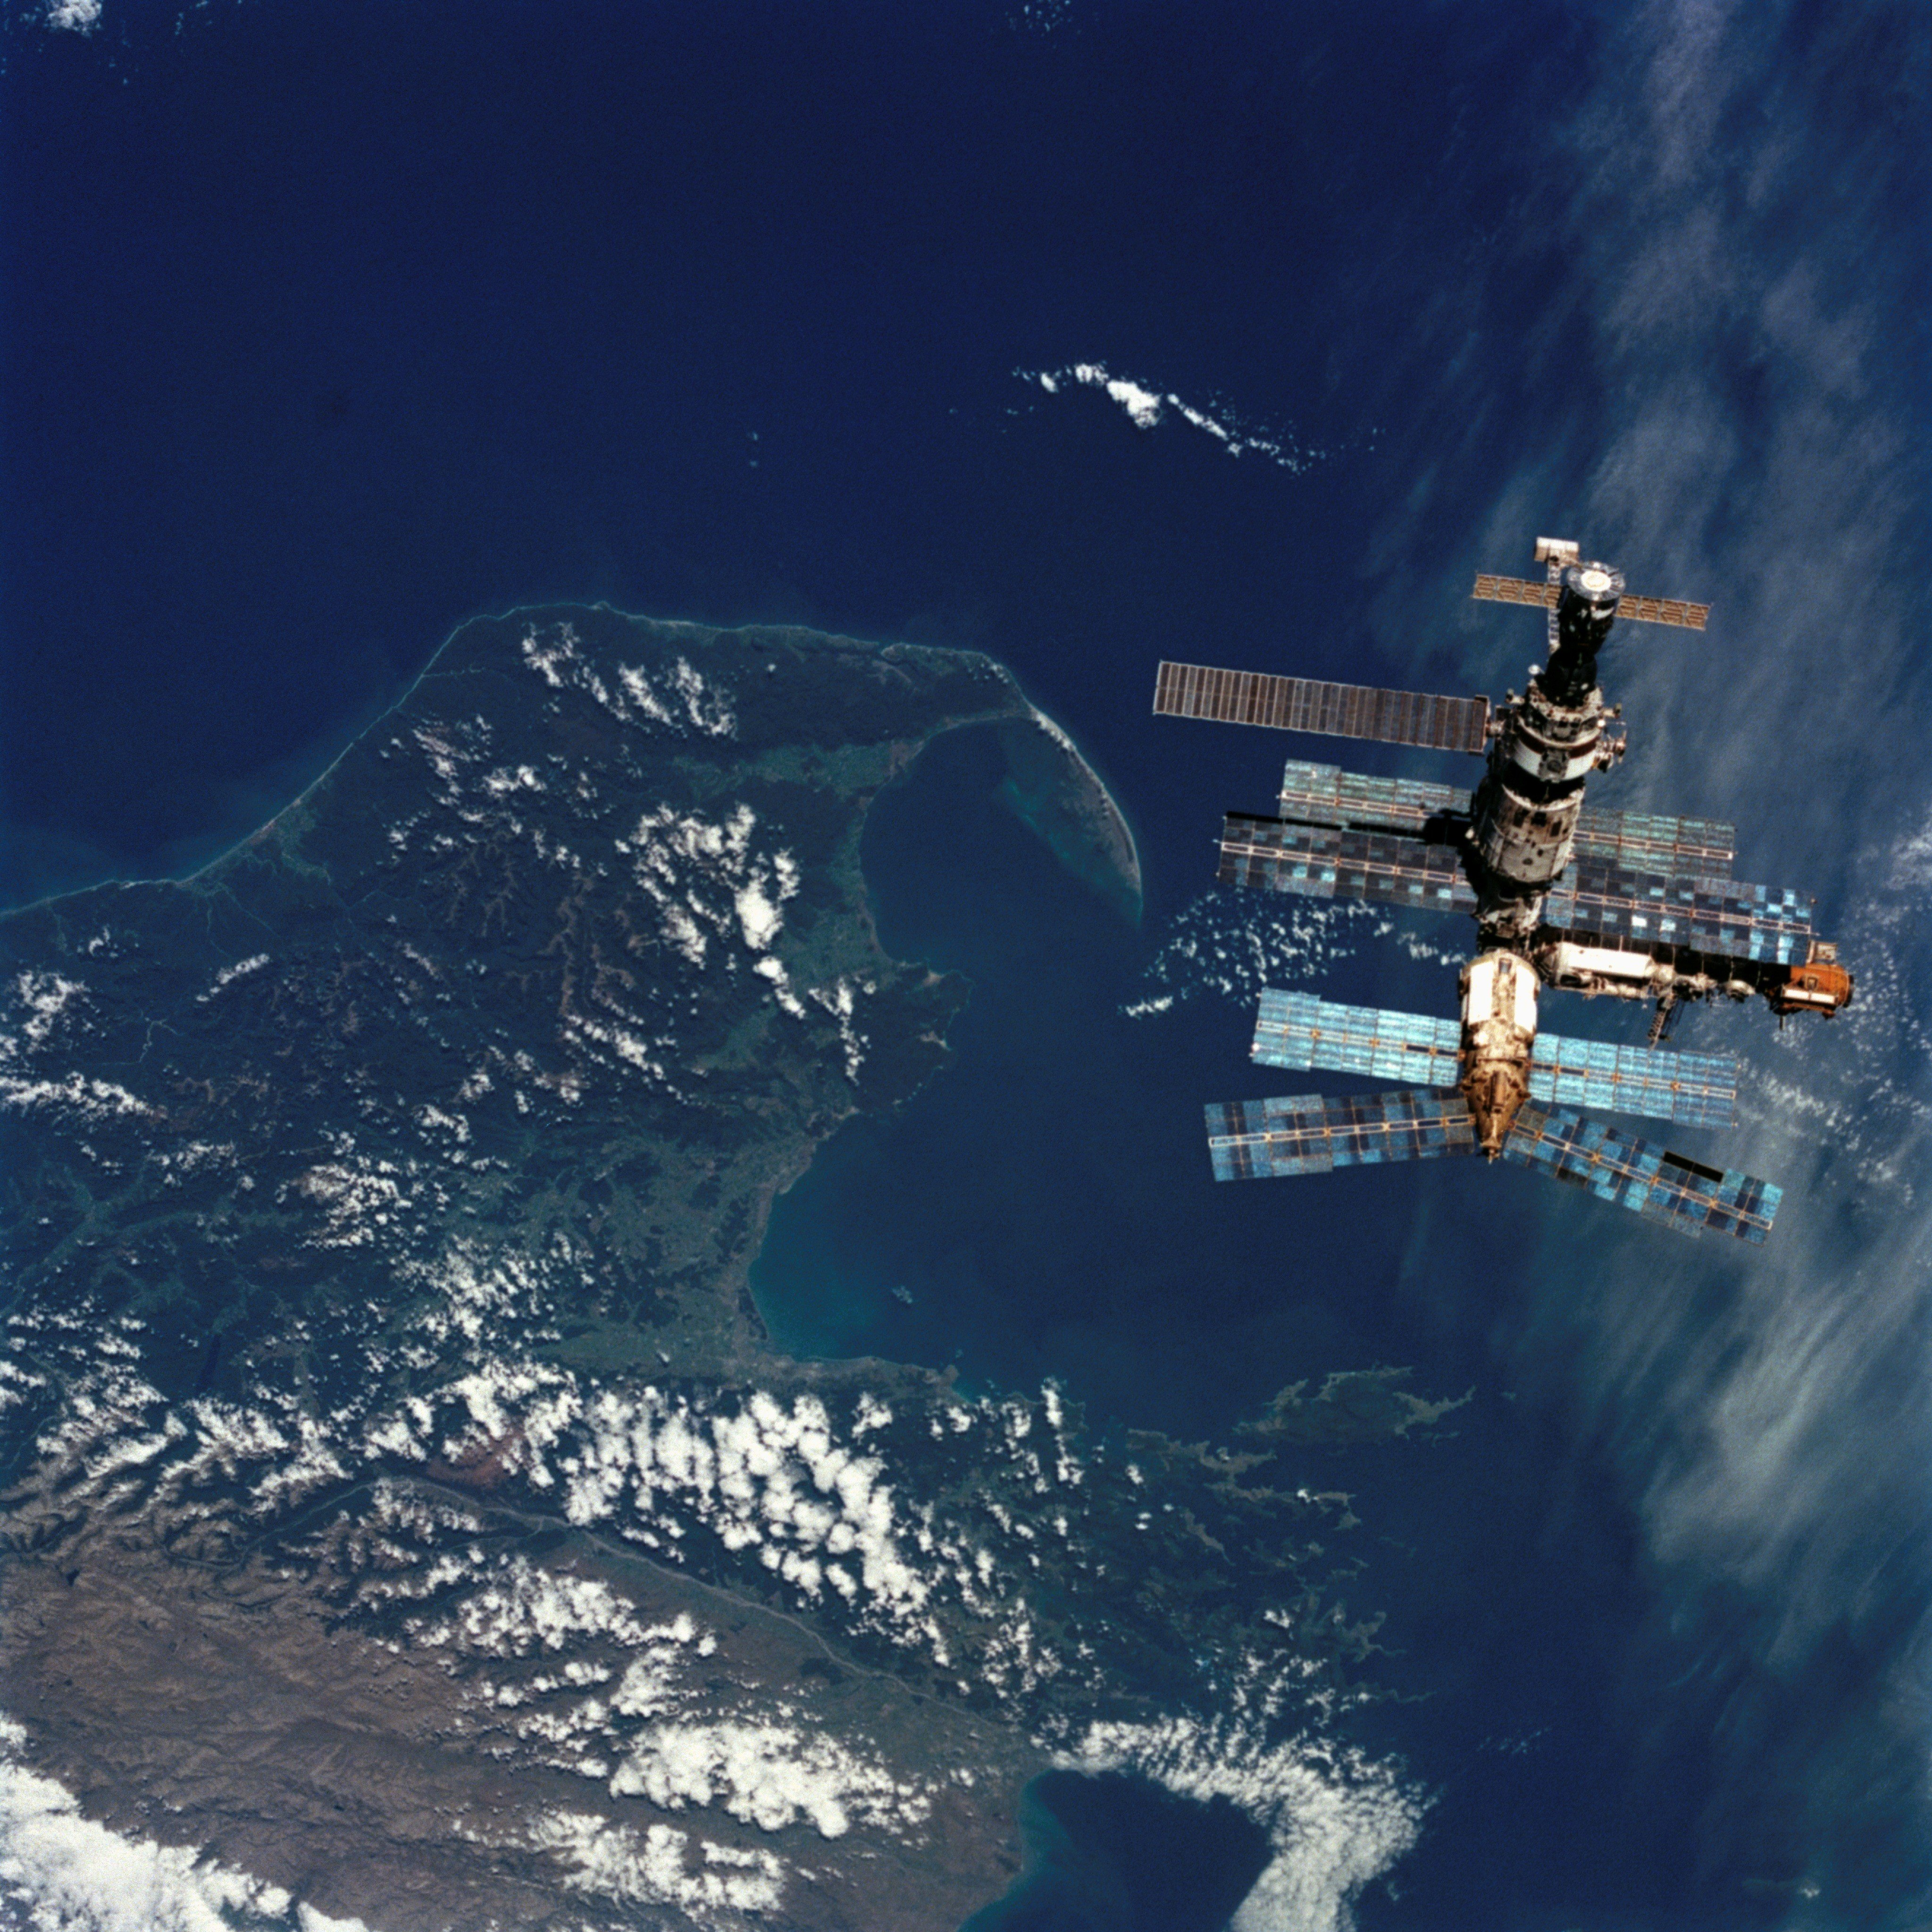 Nasa Russia Mir Space Station New Zealand Hd Wallpapers